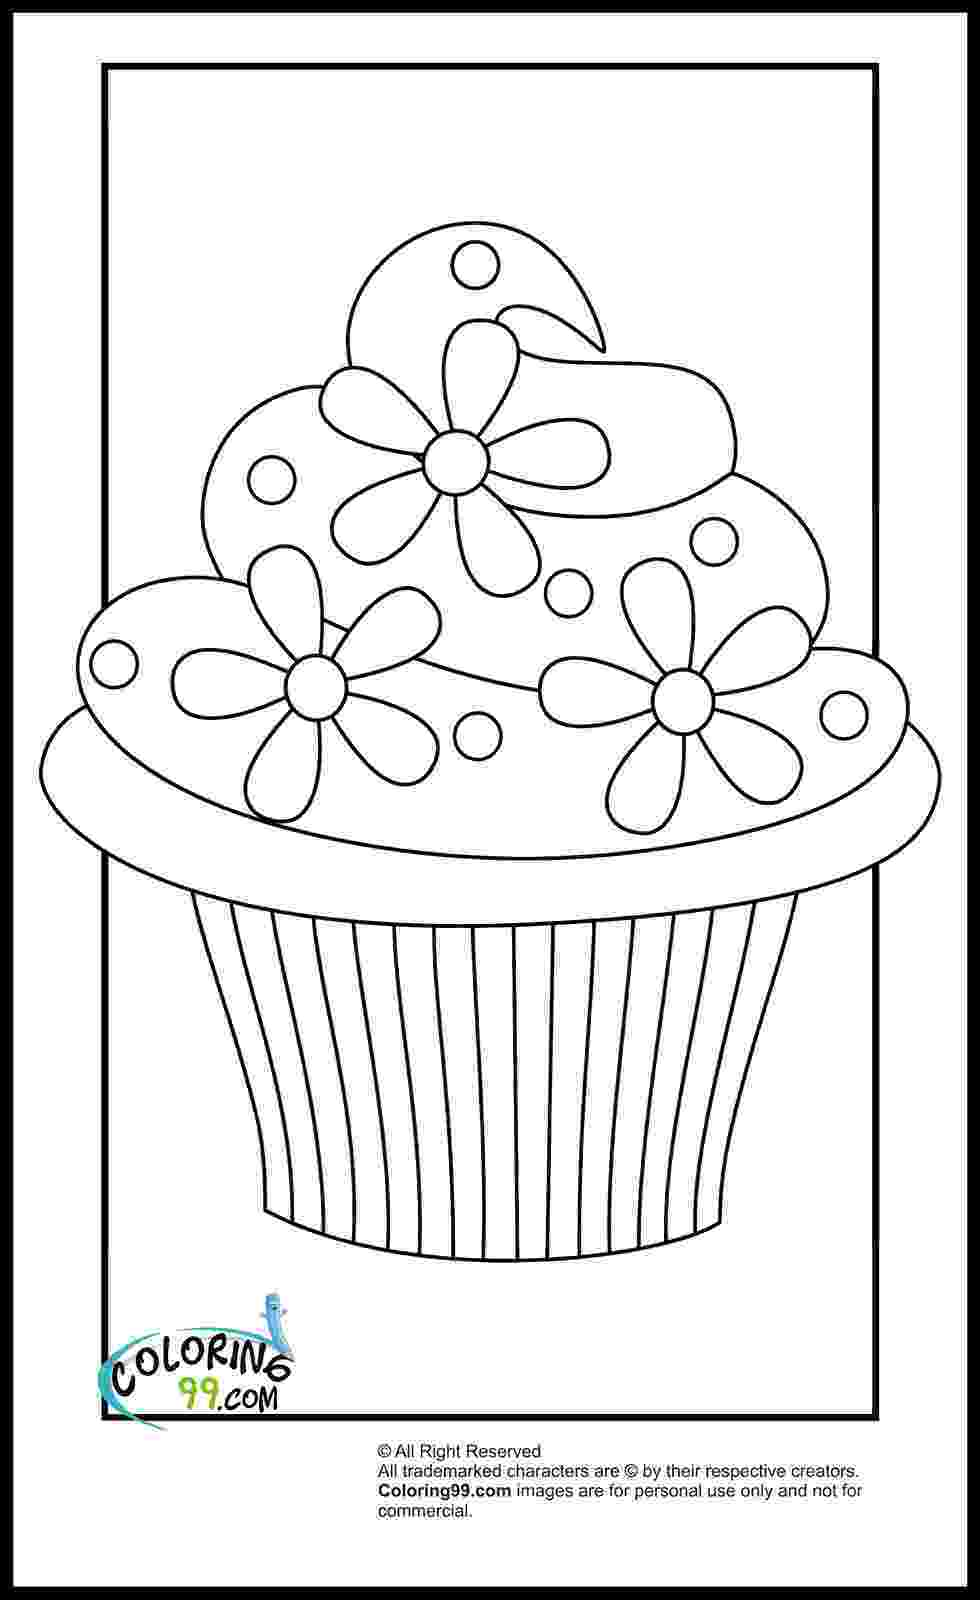 coloring pages cupcakes free printable cupcake coloring pages for kids cool2bkids coloring pages cupcakes